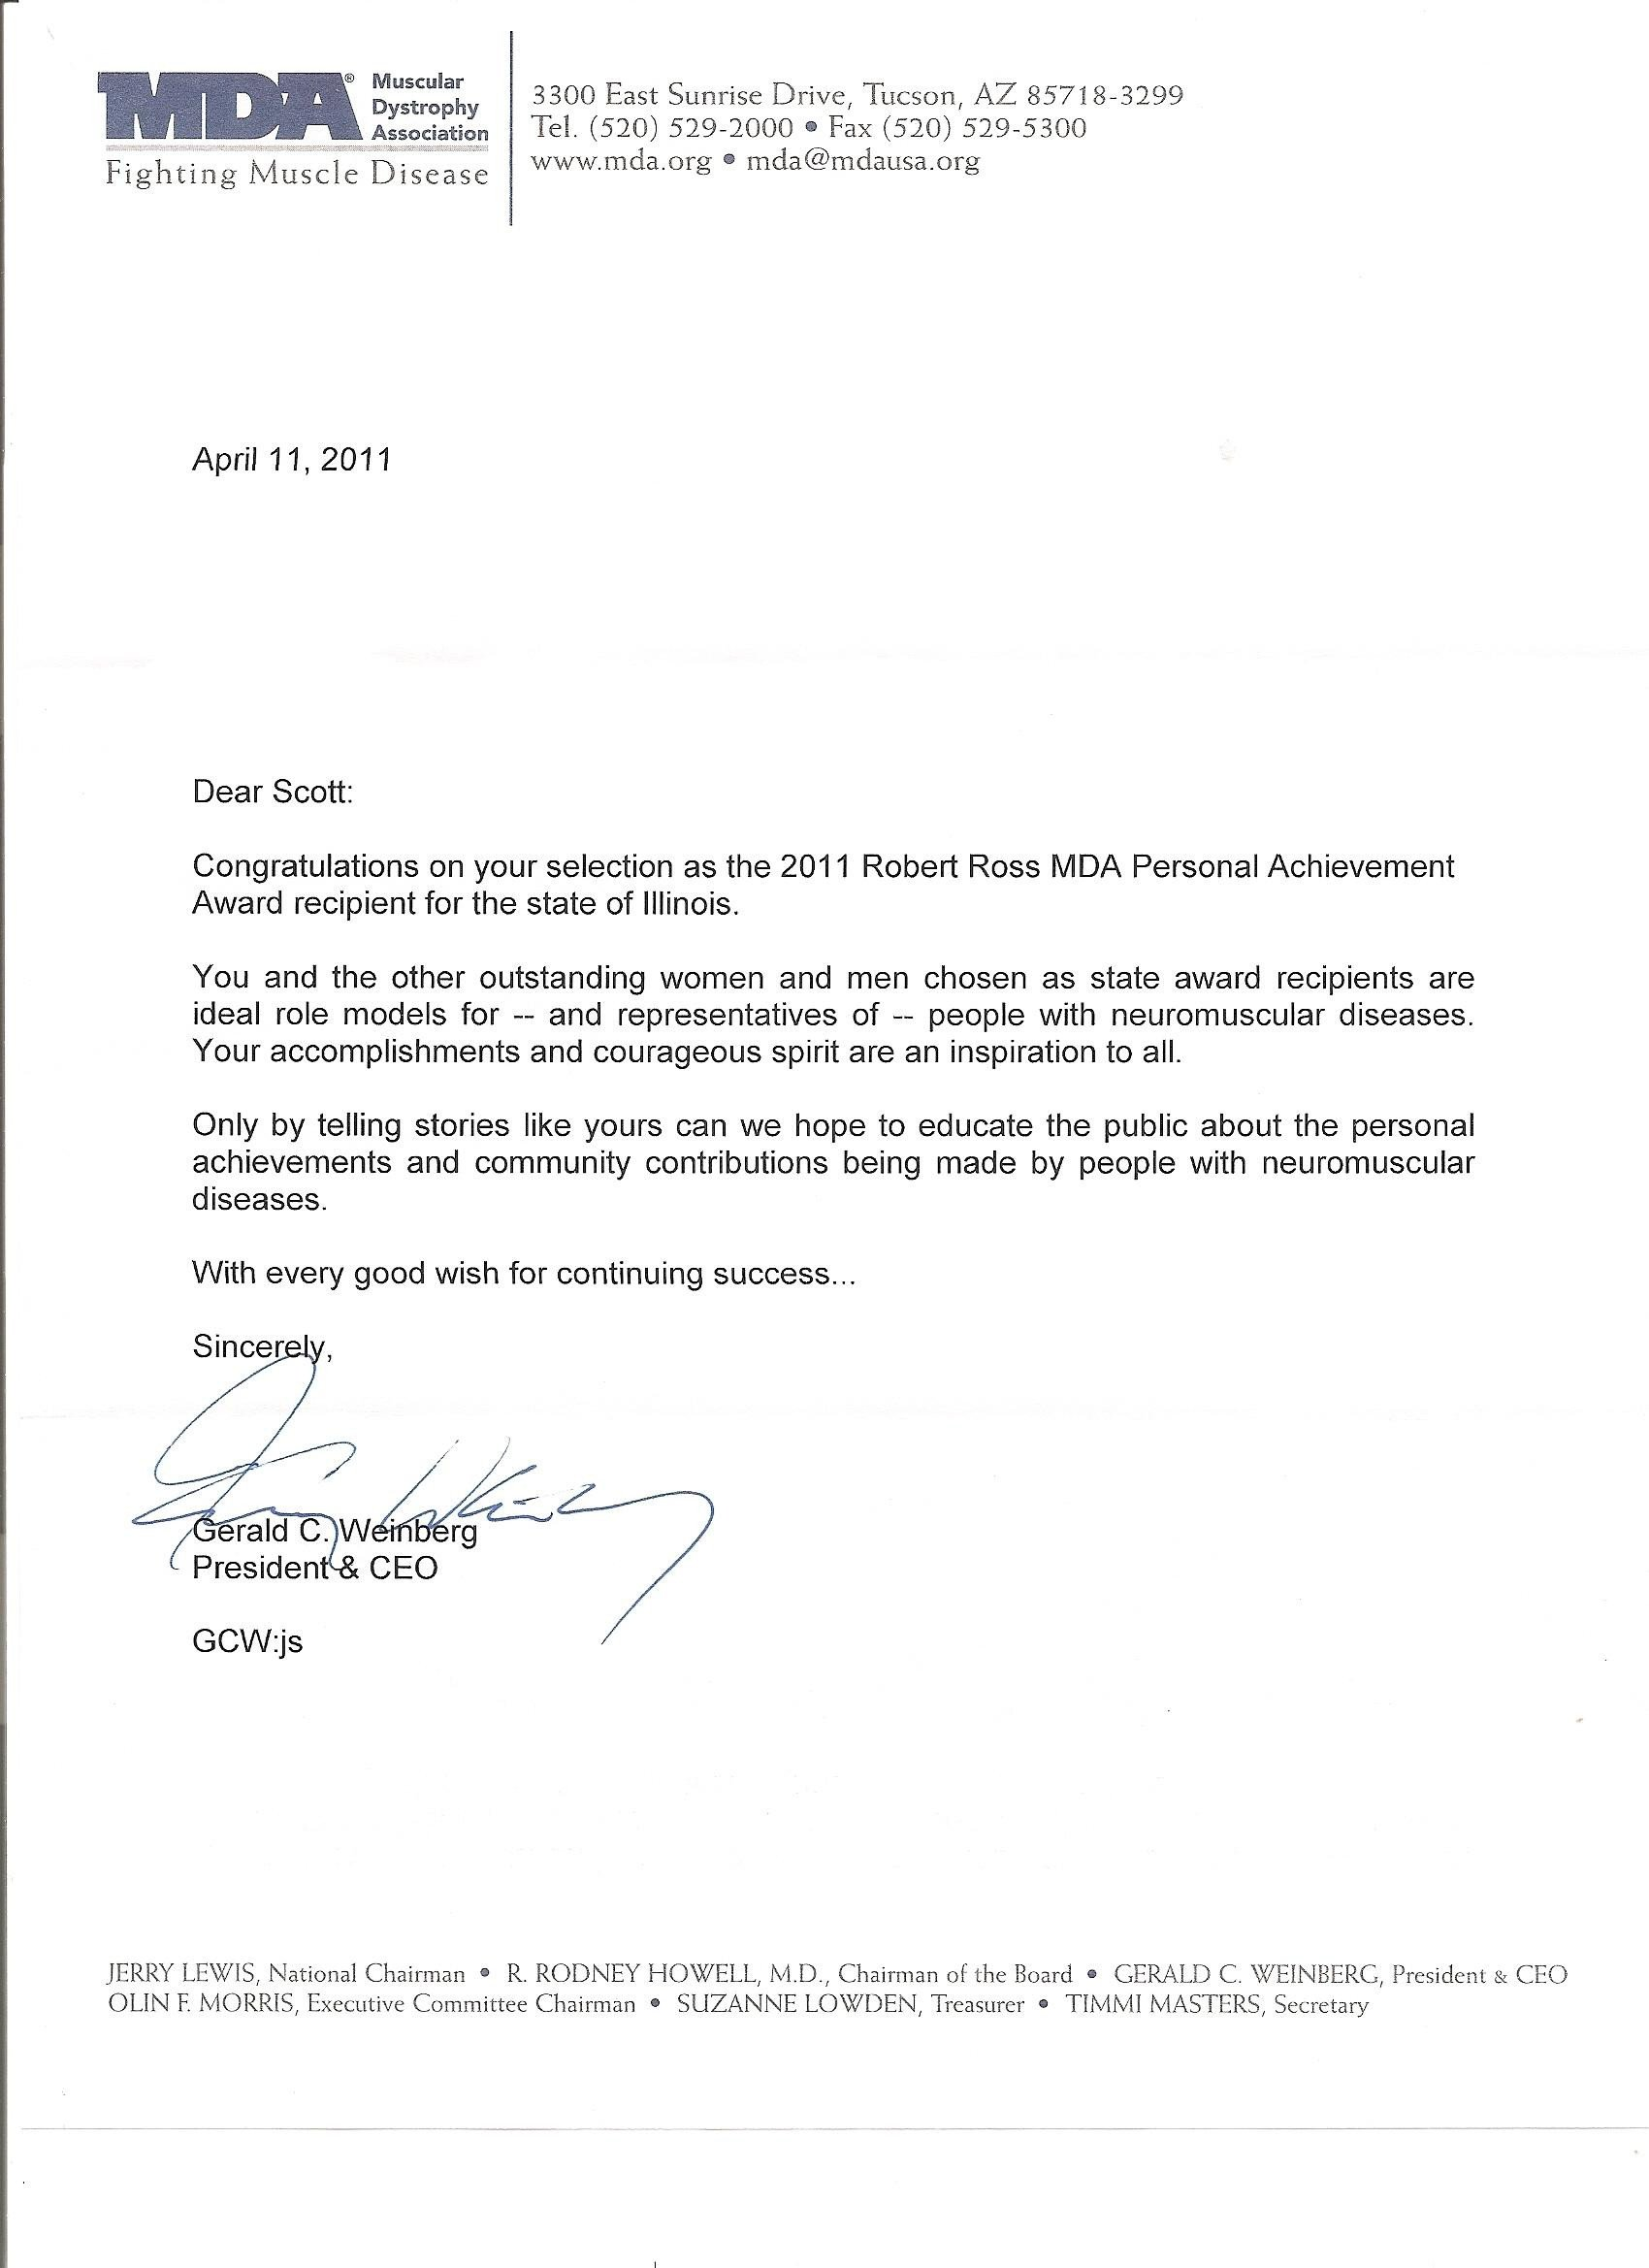 Congratulation Letter On Achievement Congratulations Letter From the President and Ceo Of the